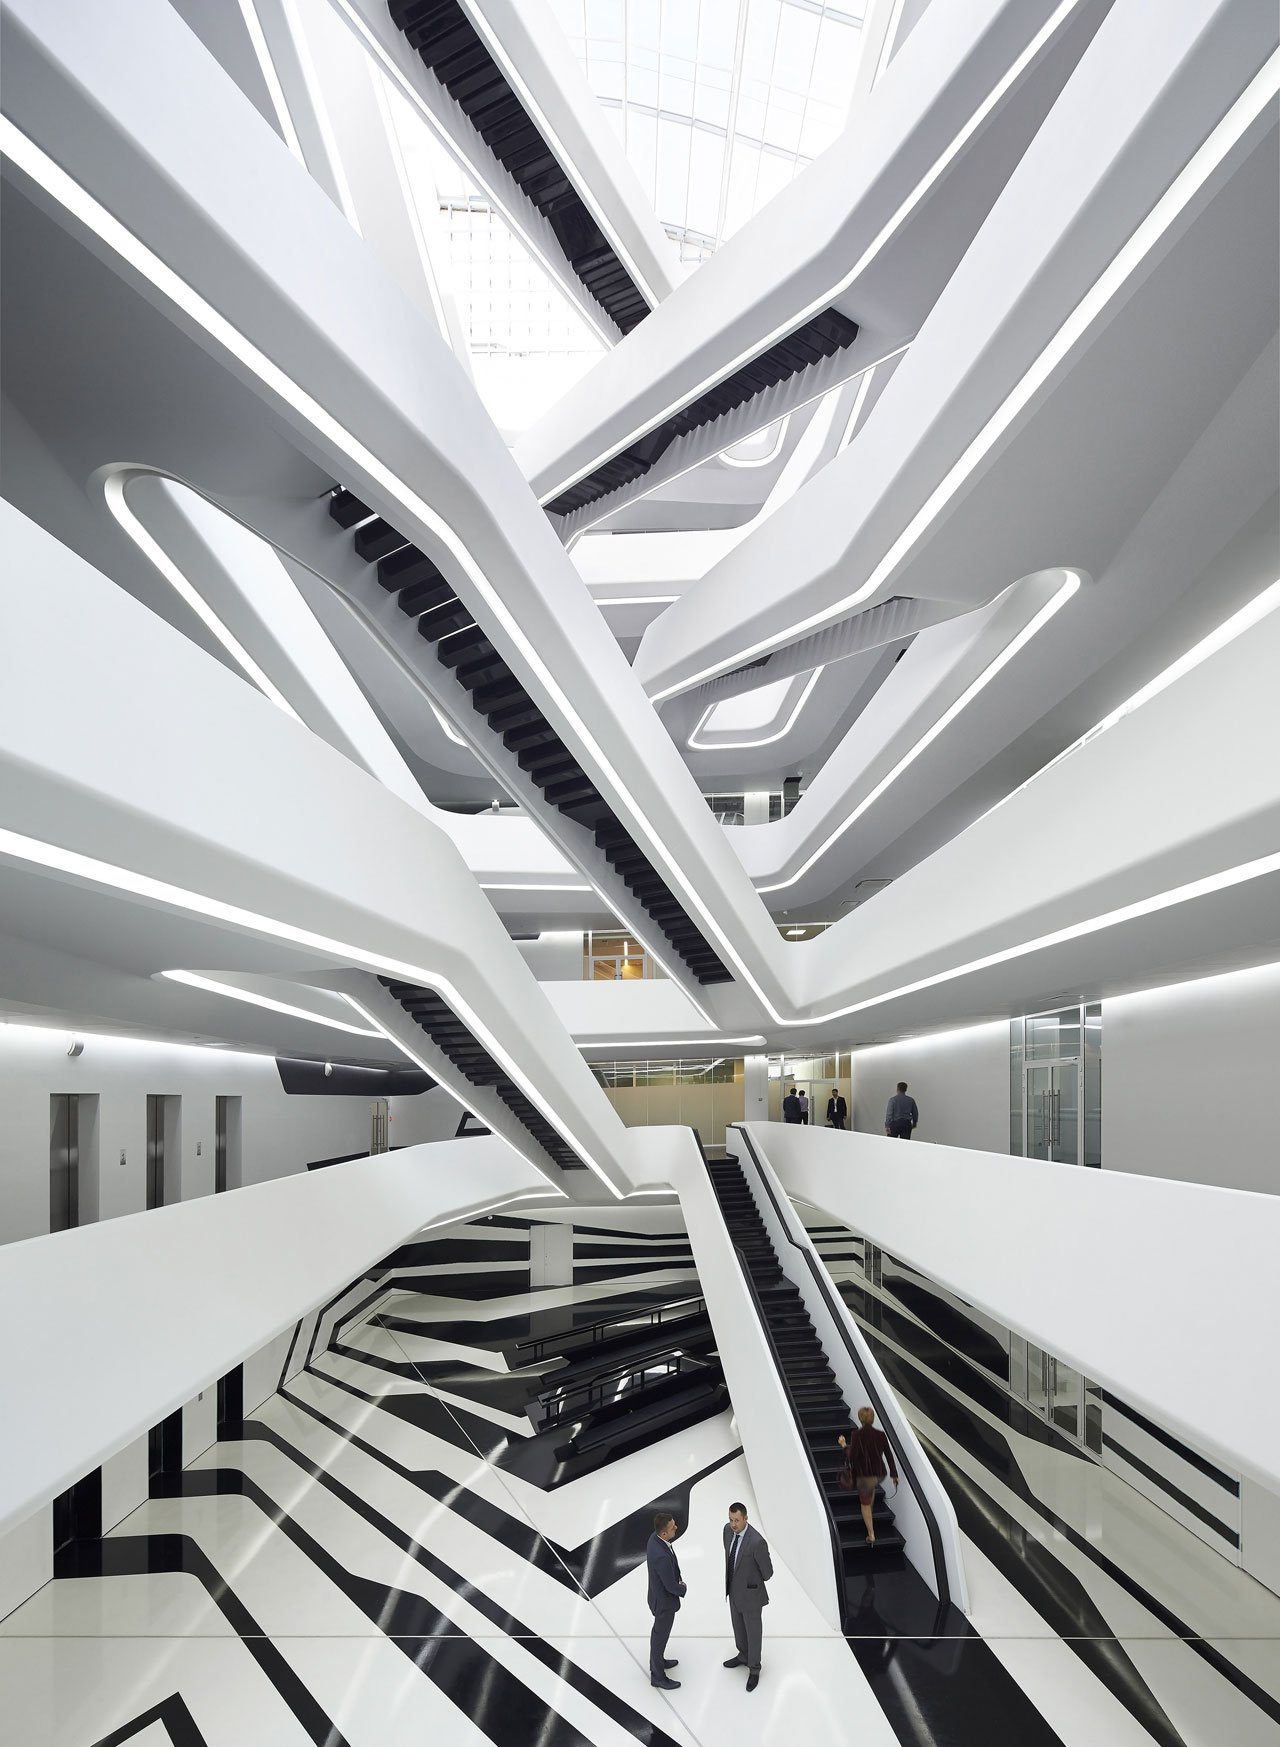 Dominion Office Space by Zaha Hadid Architects. Photo © Hufton + Crow Photographers.